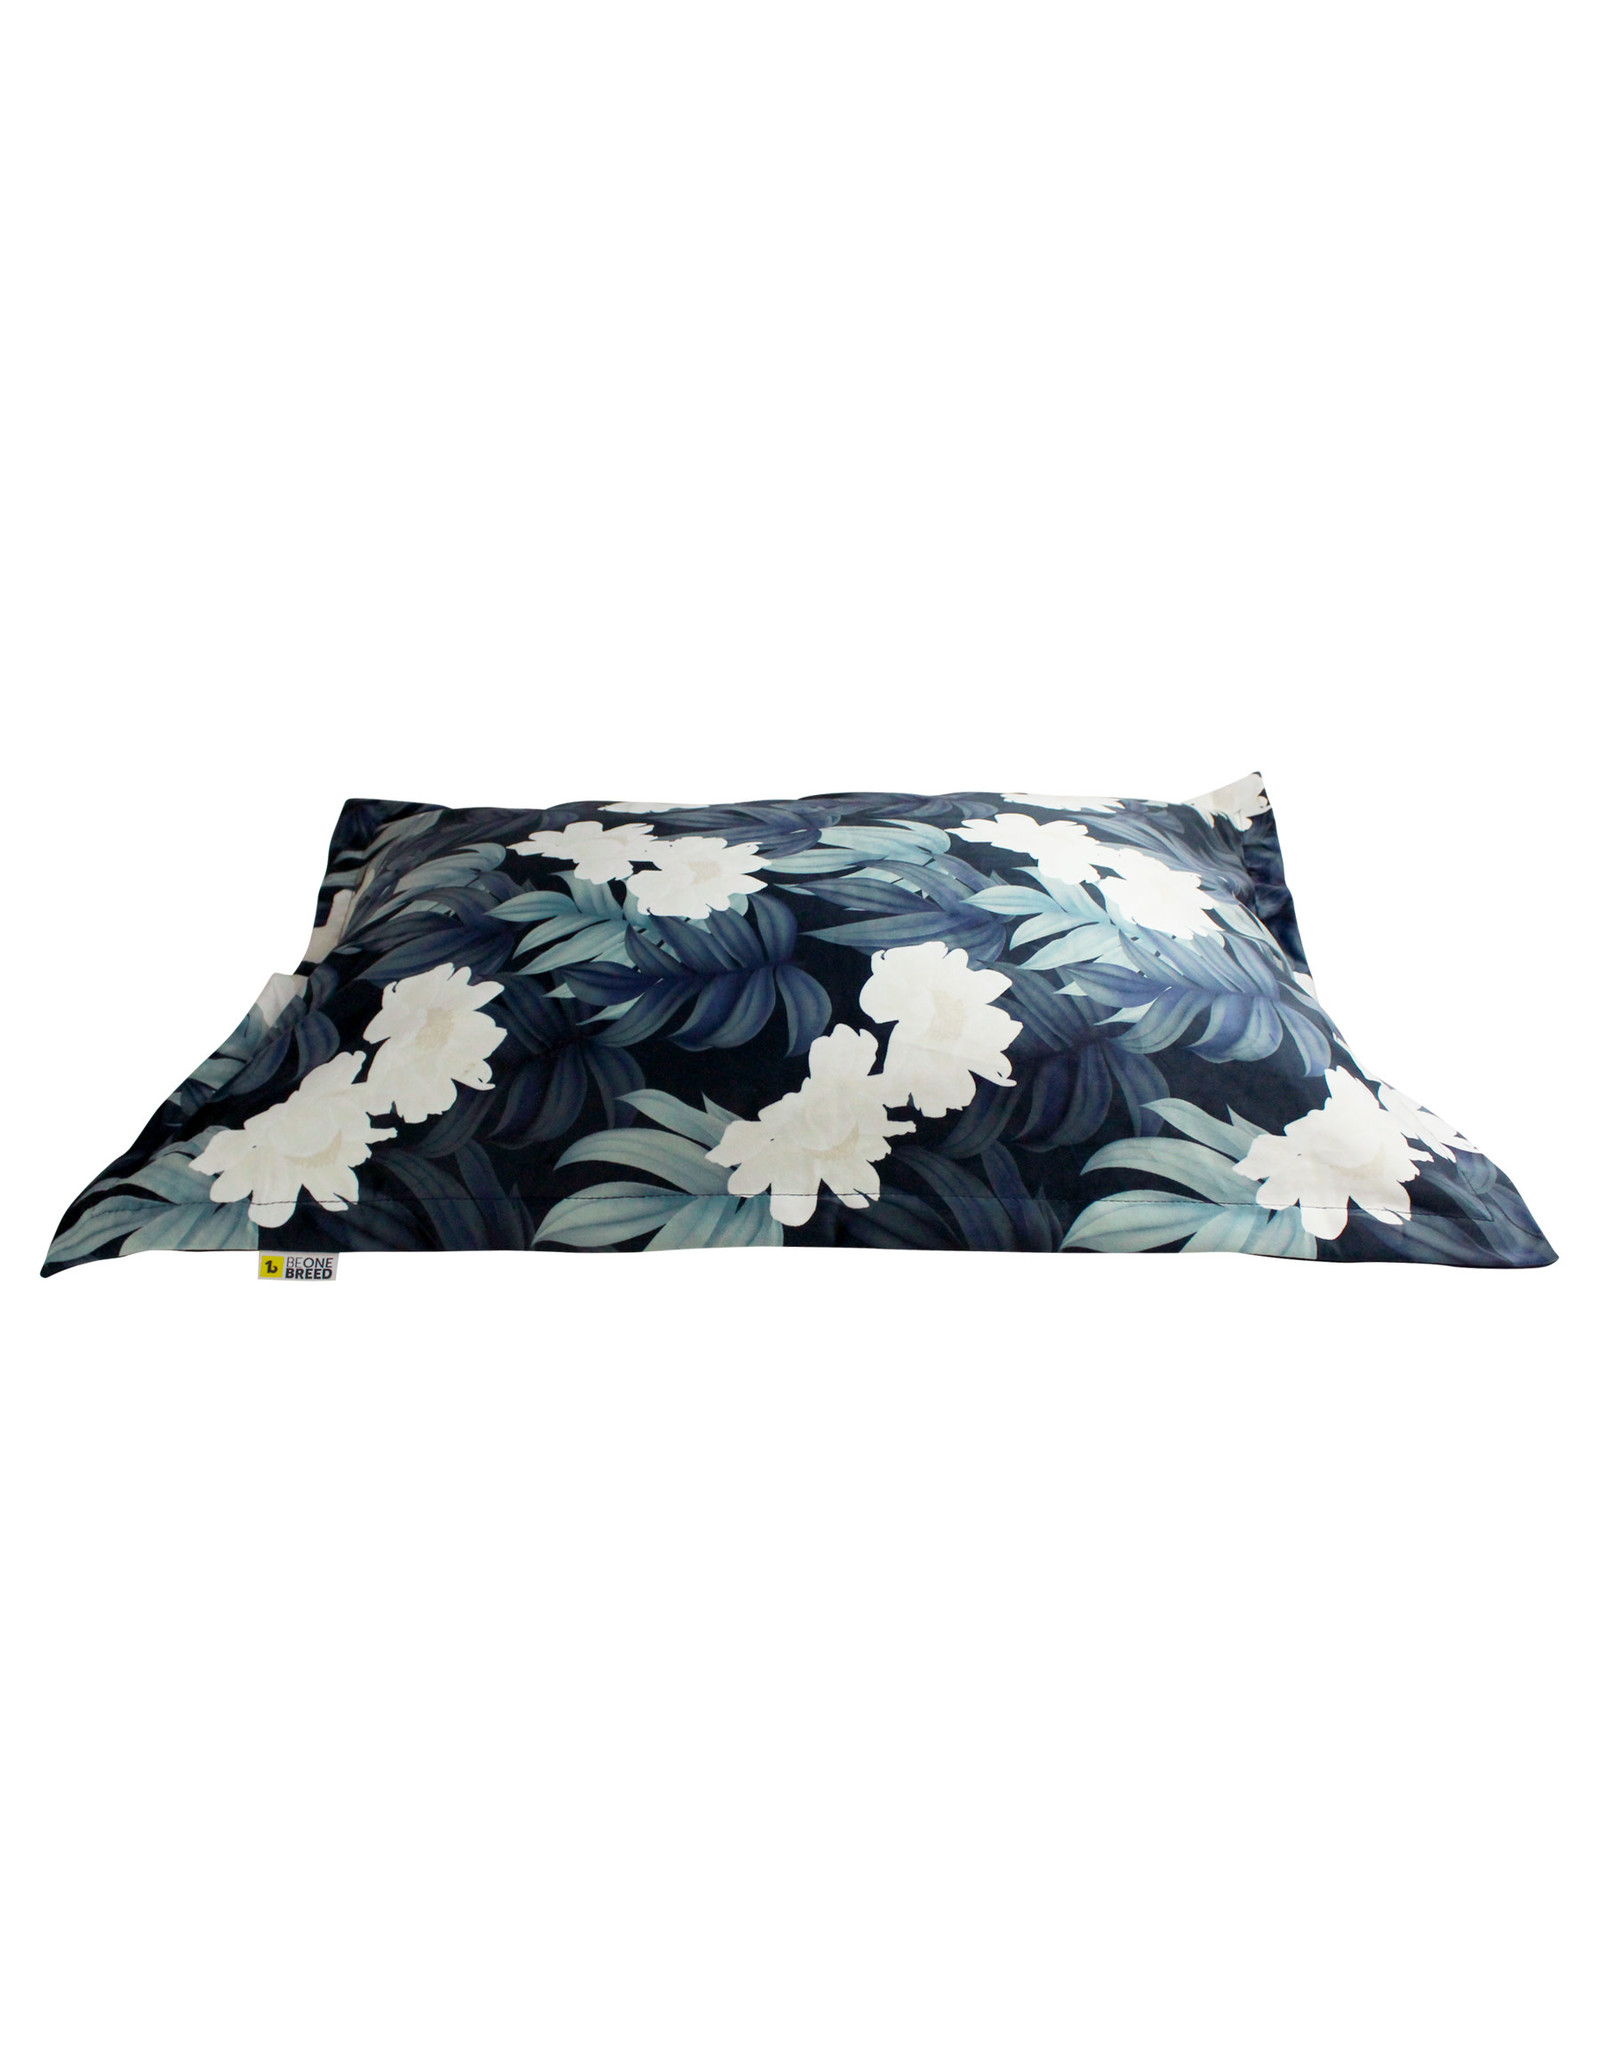 BeOneBreed BeOneBreed Cloud Pillow Bed - Medium 36x27 - Peonies